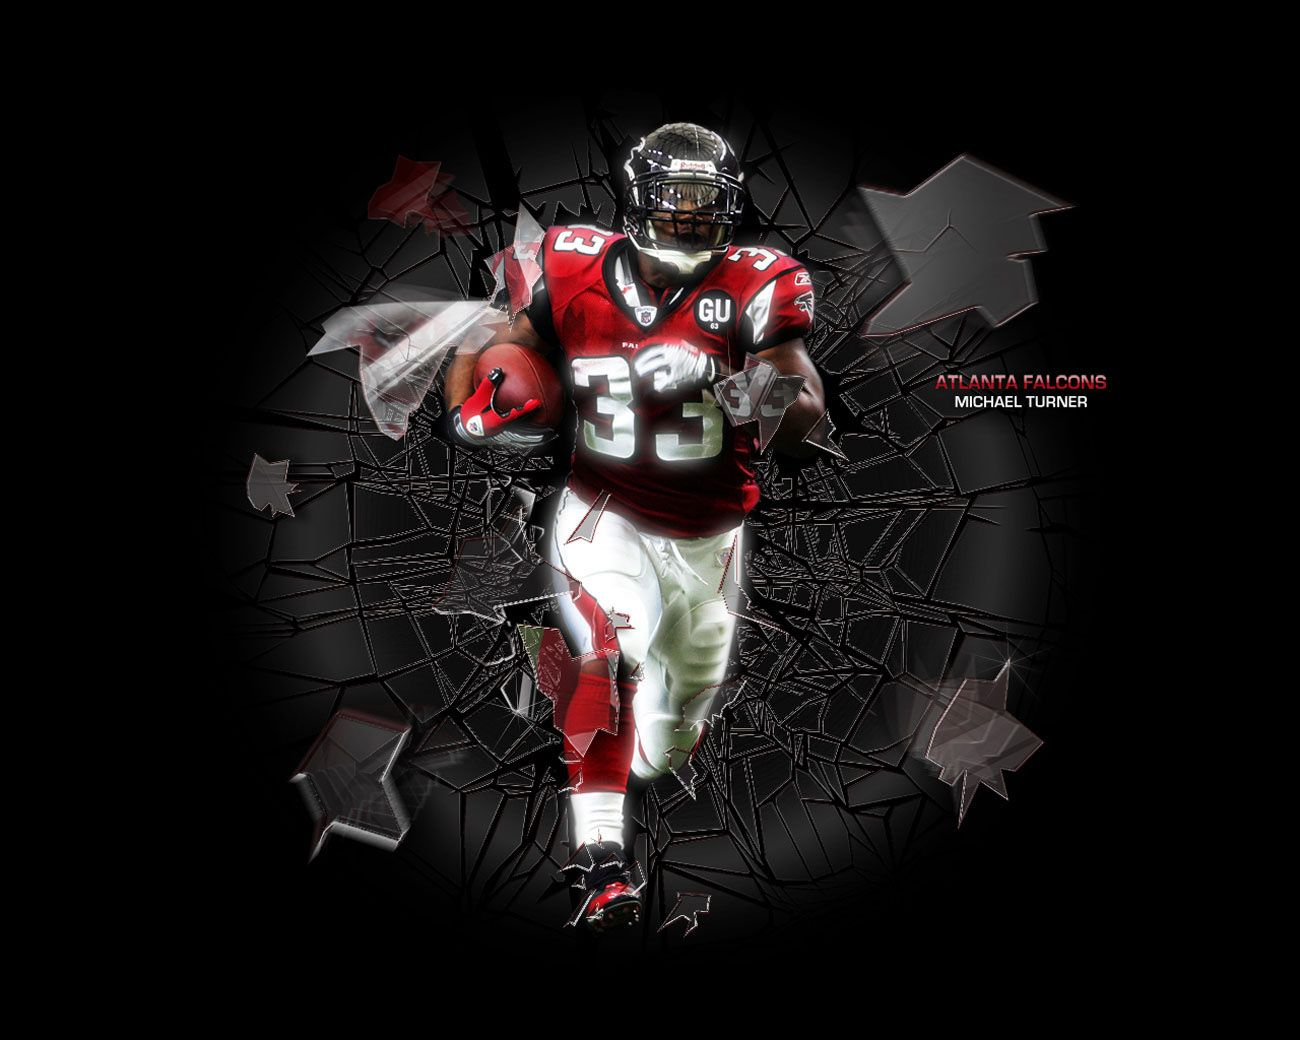 Pin By Crystal M On Go Falcons Atlanta Falcons Football Atlanta Falcons Fans Atlanta Falcons